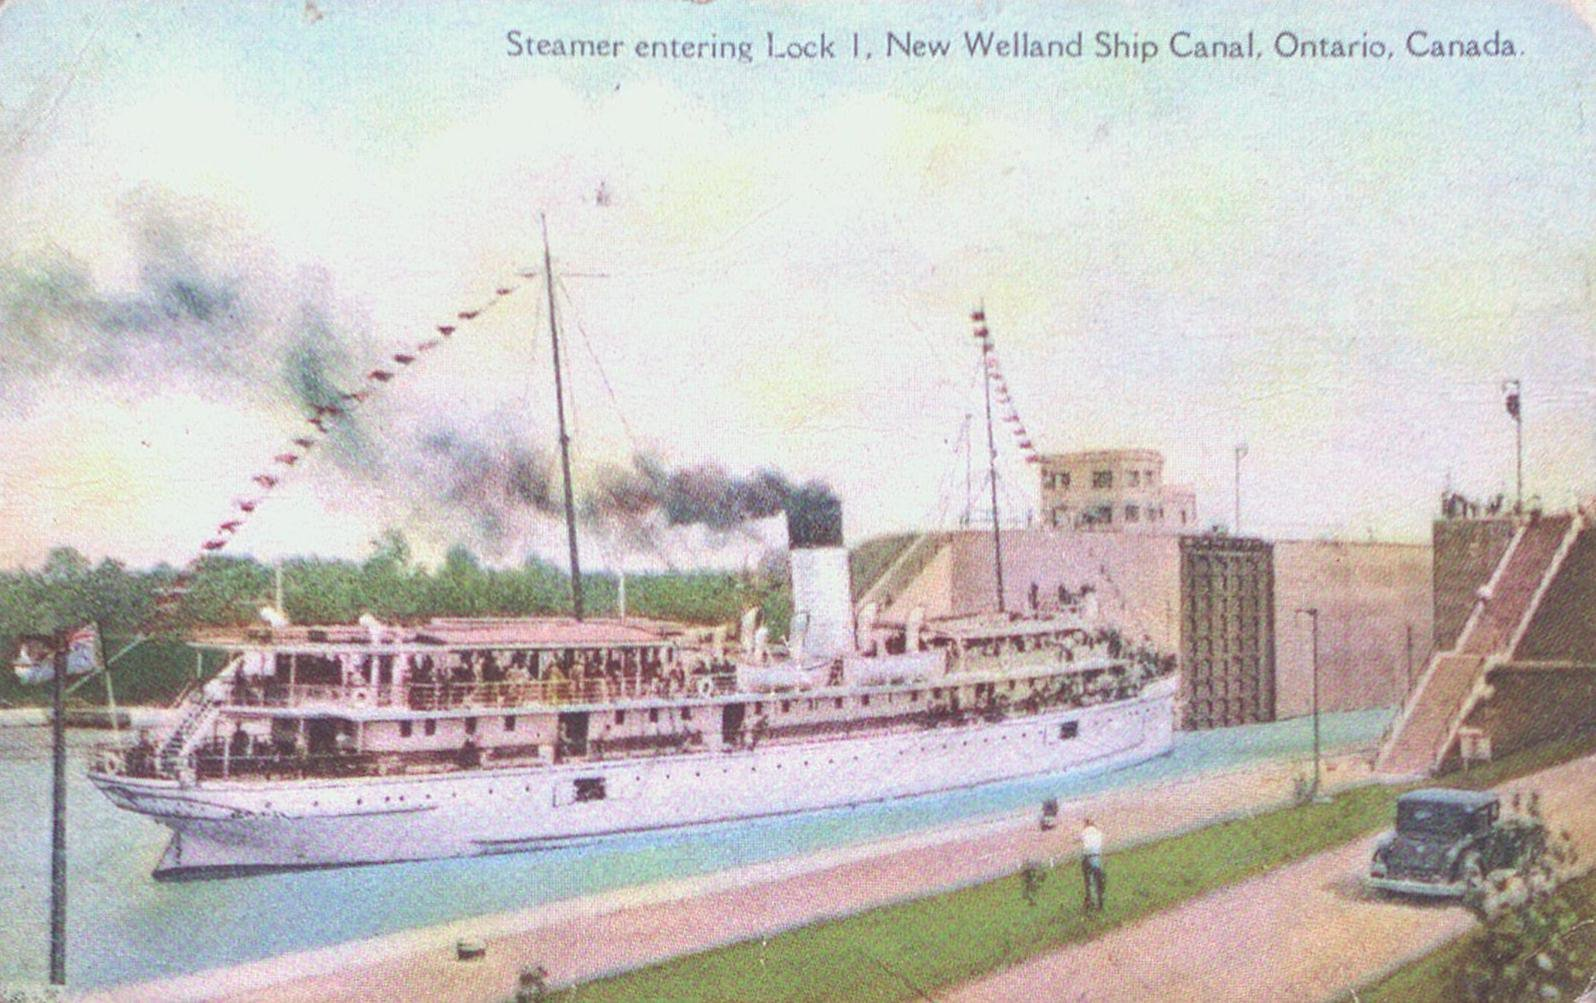 A Steamer Entering Lock One on the Welland Ship Canal